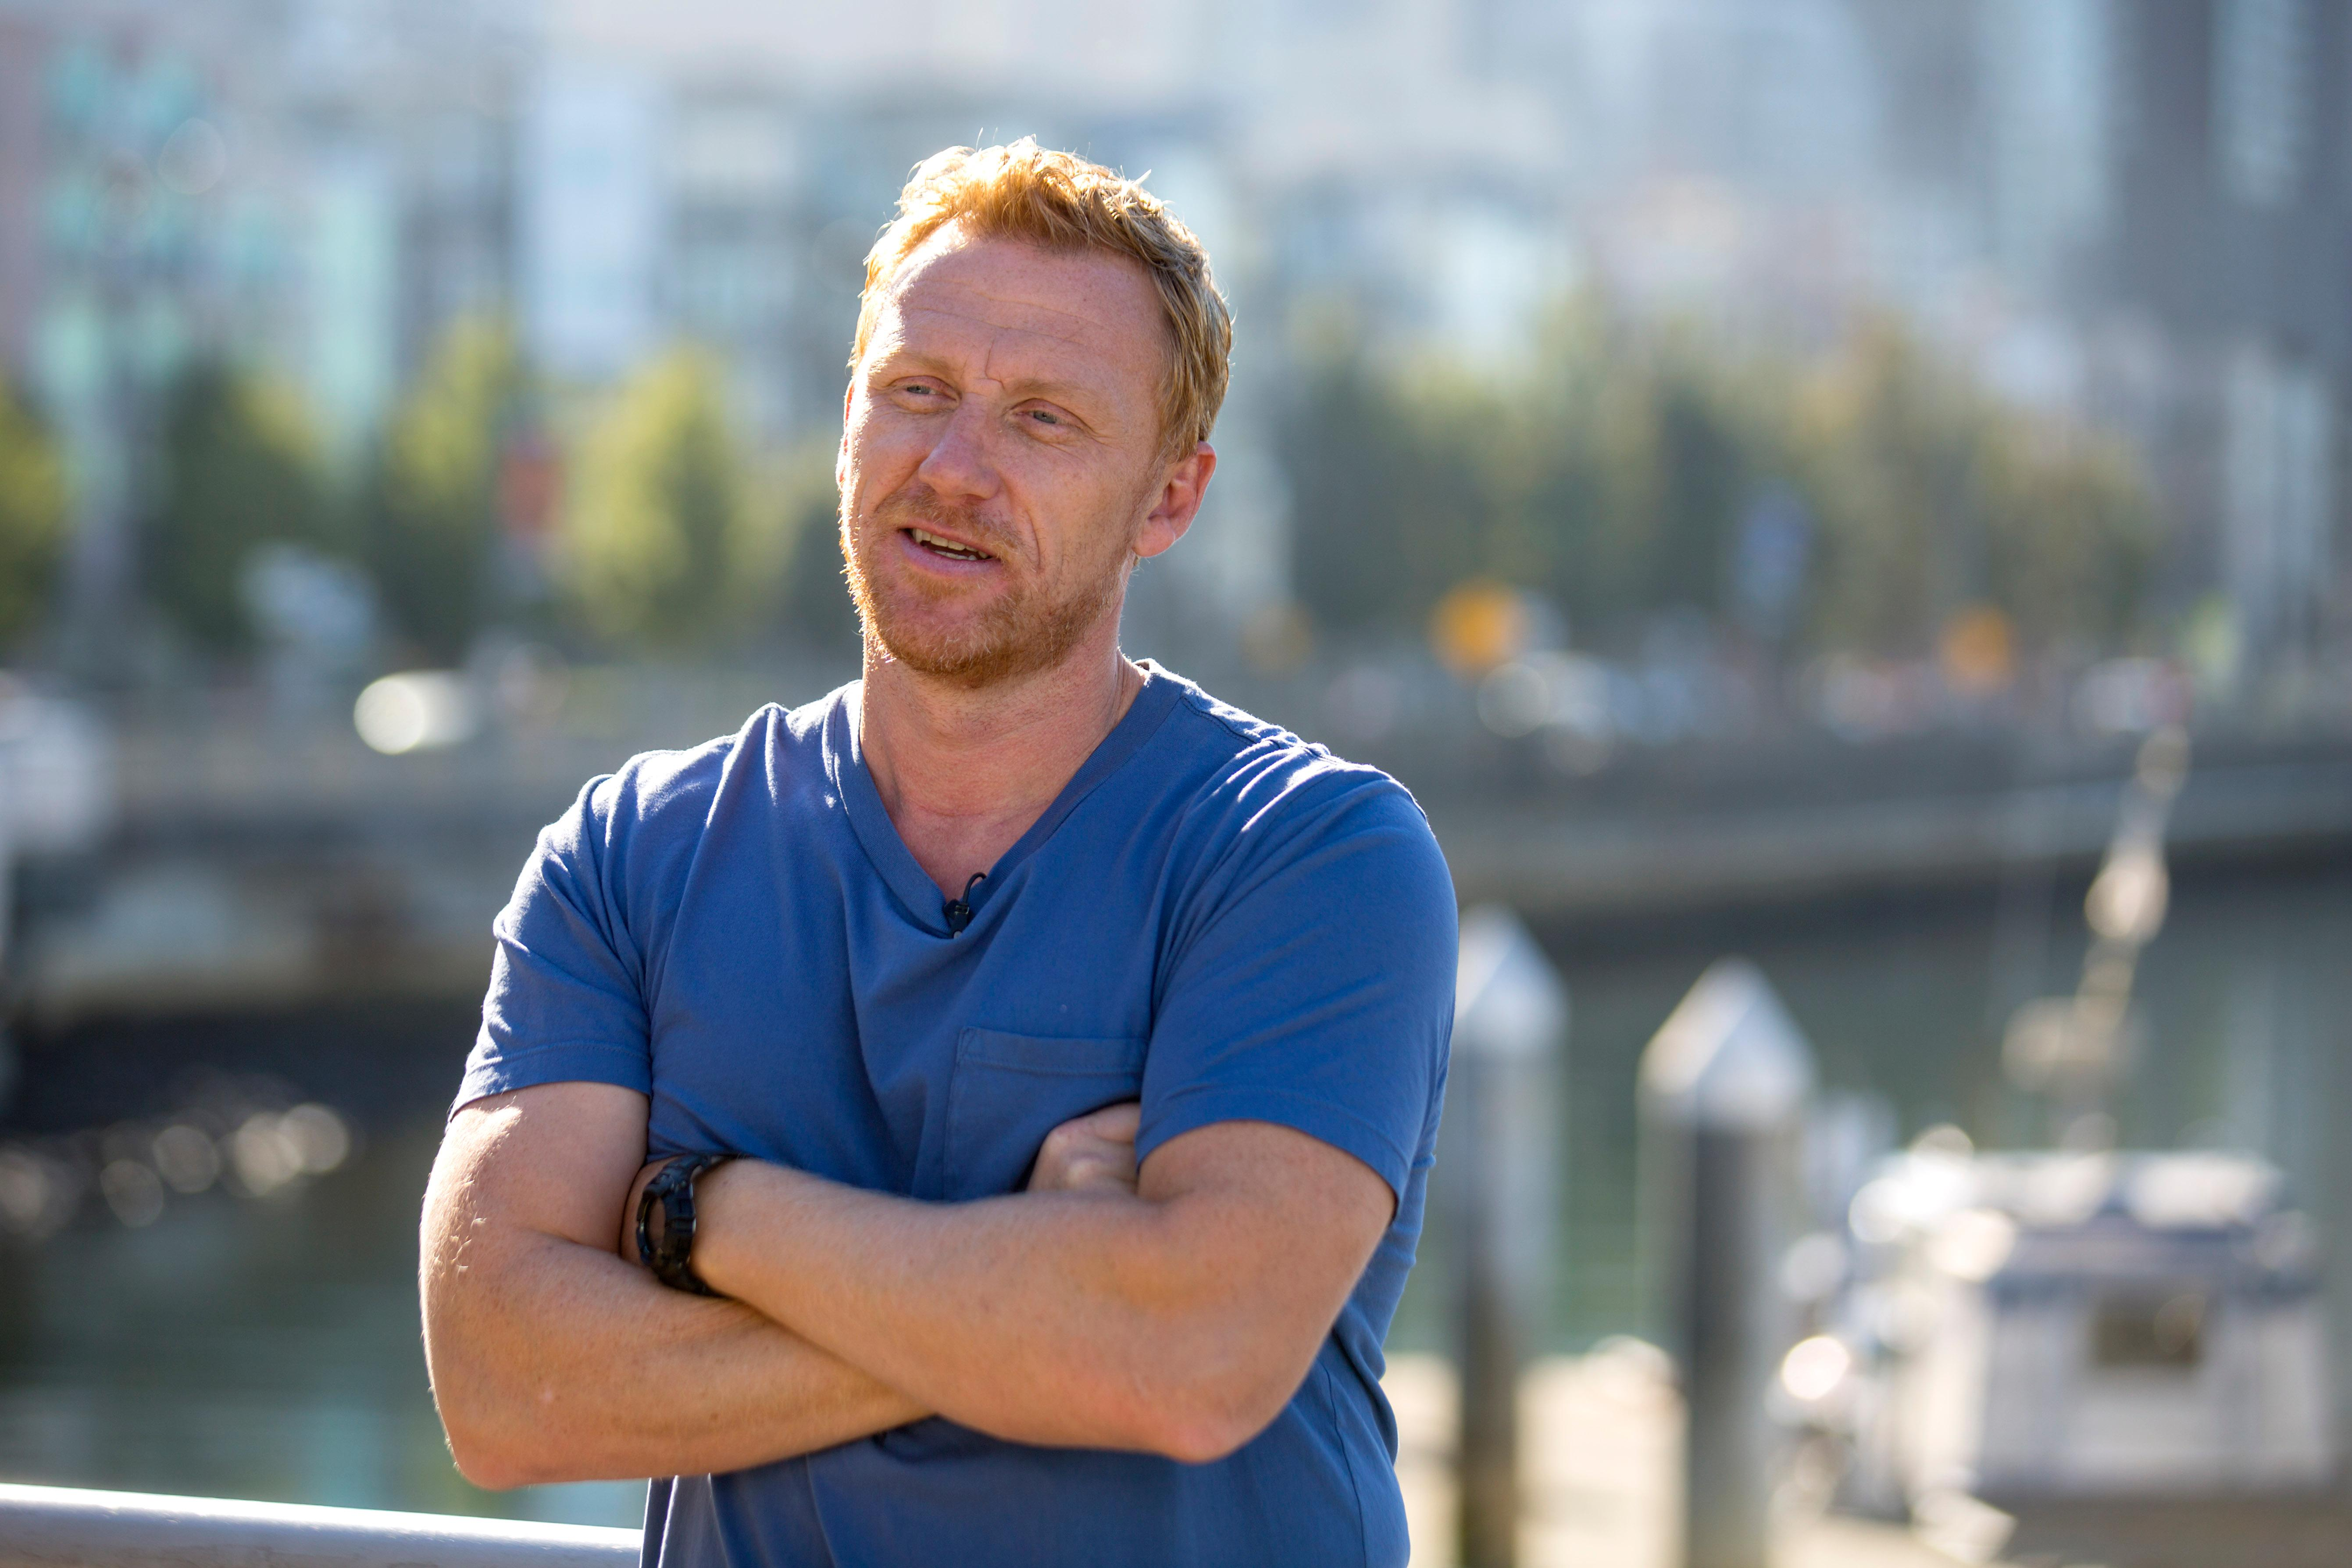 Kevin McKidd, who plays Dr. Owen Hunt on Grey's Anatomy. (Sy Bean / Seattle Refined)